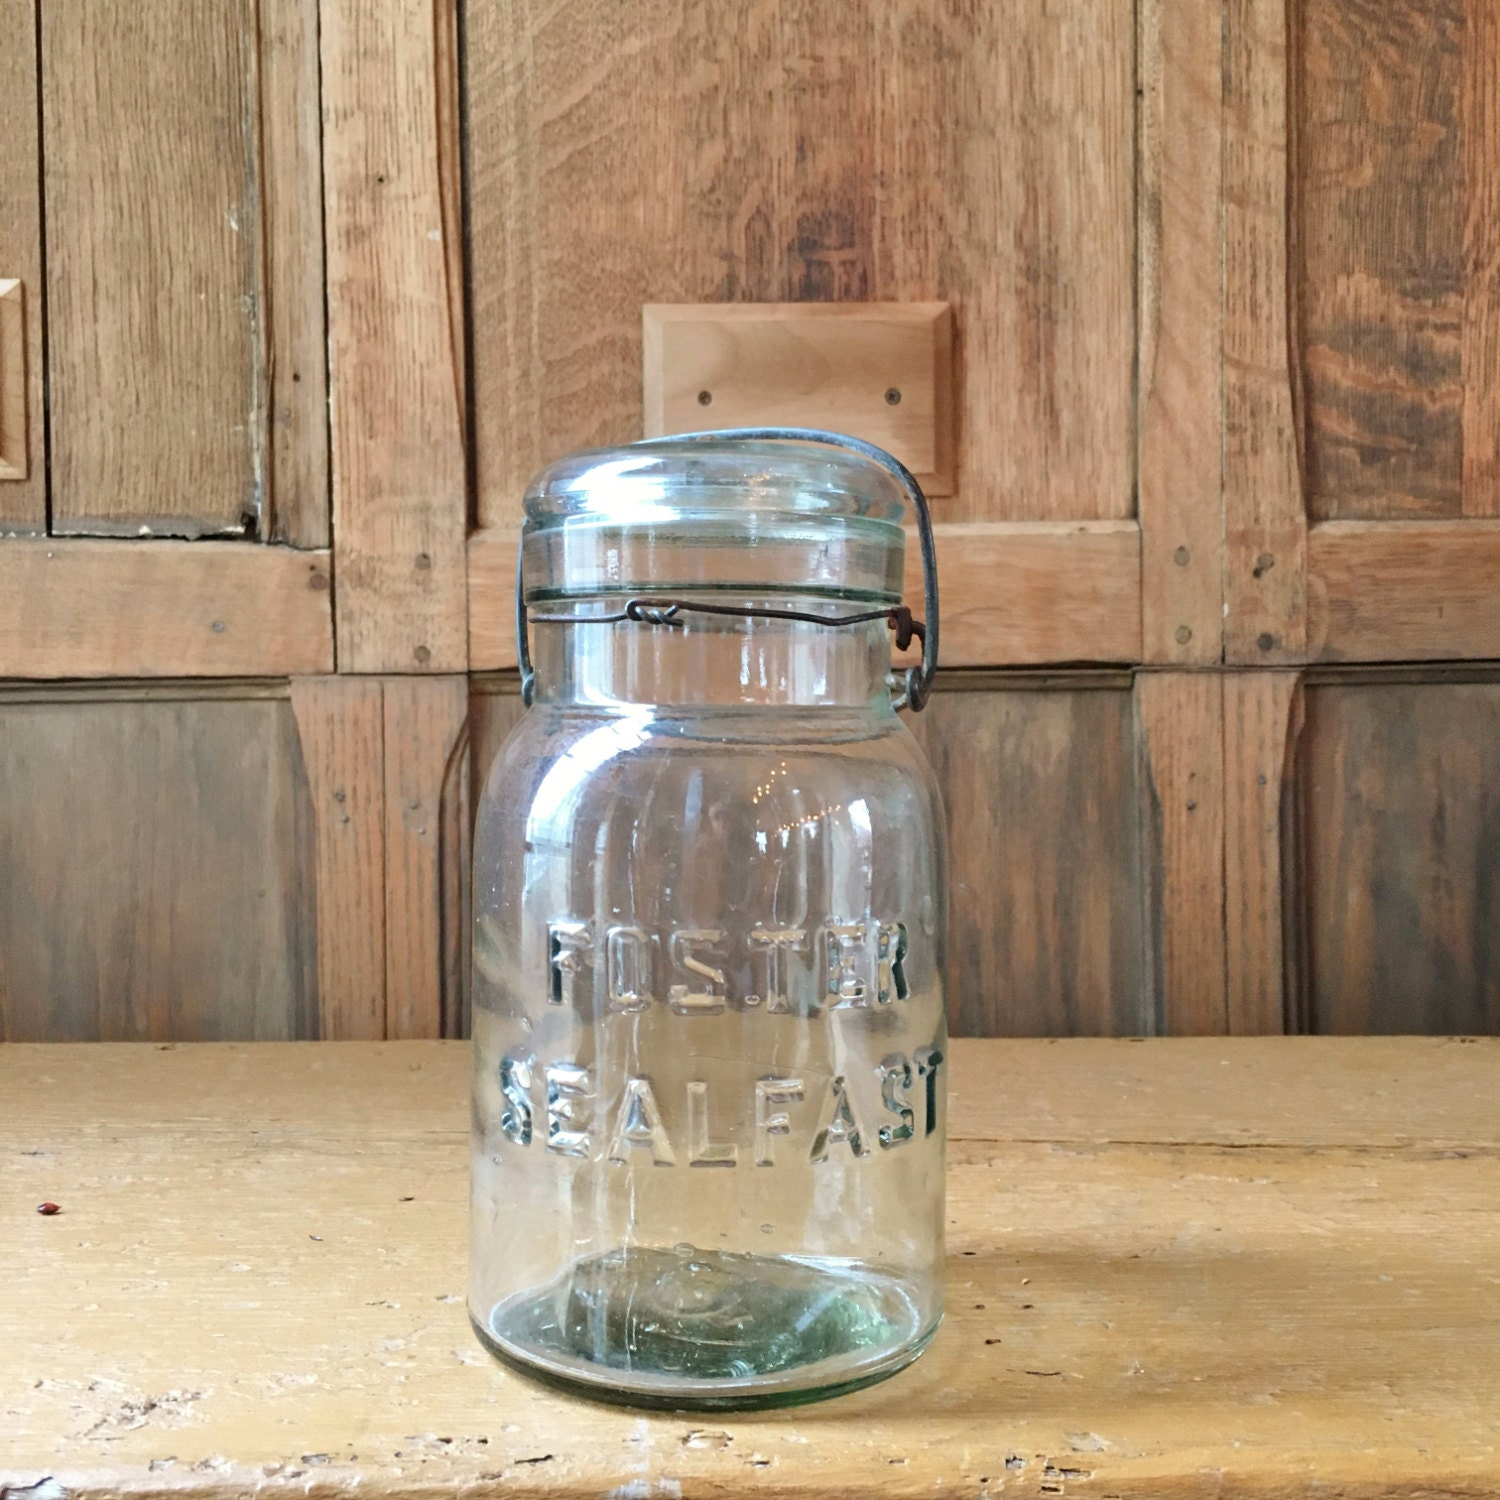 vintage mason jar foster sealfast glass jar vintage kitchen